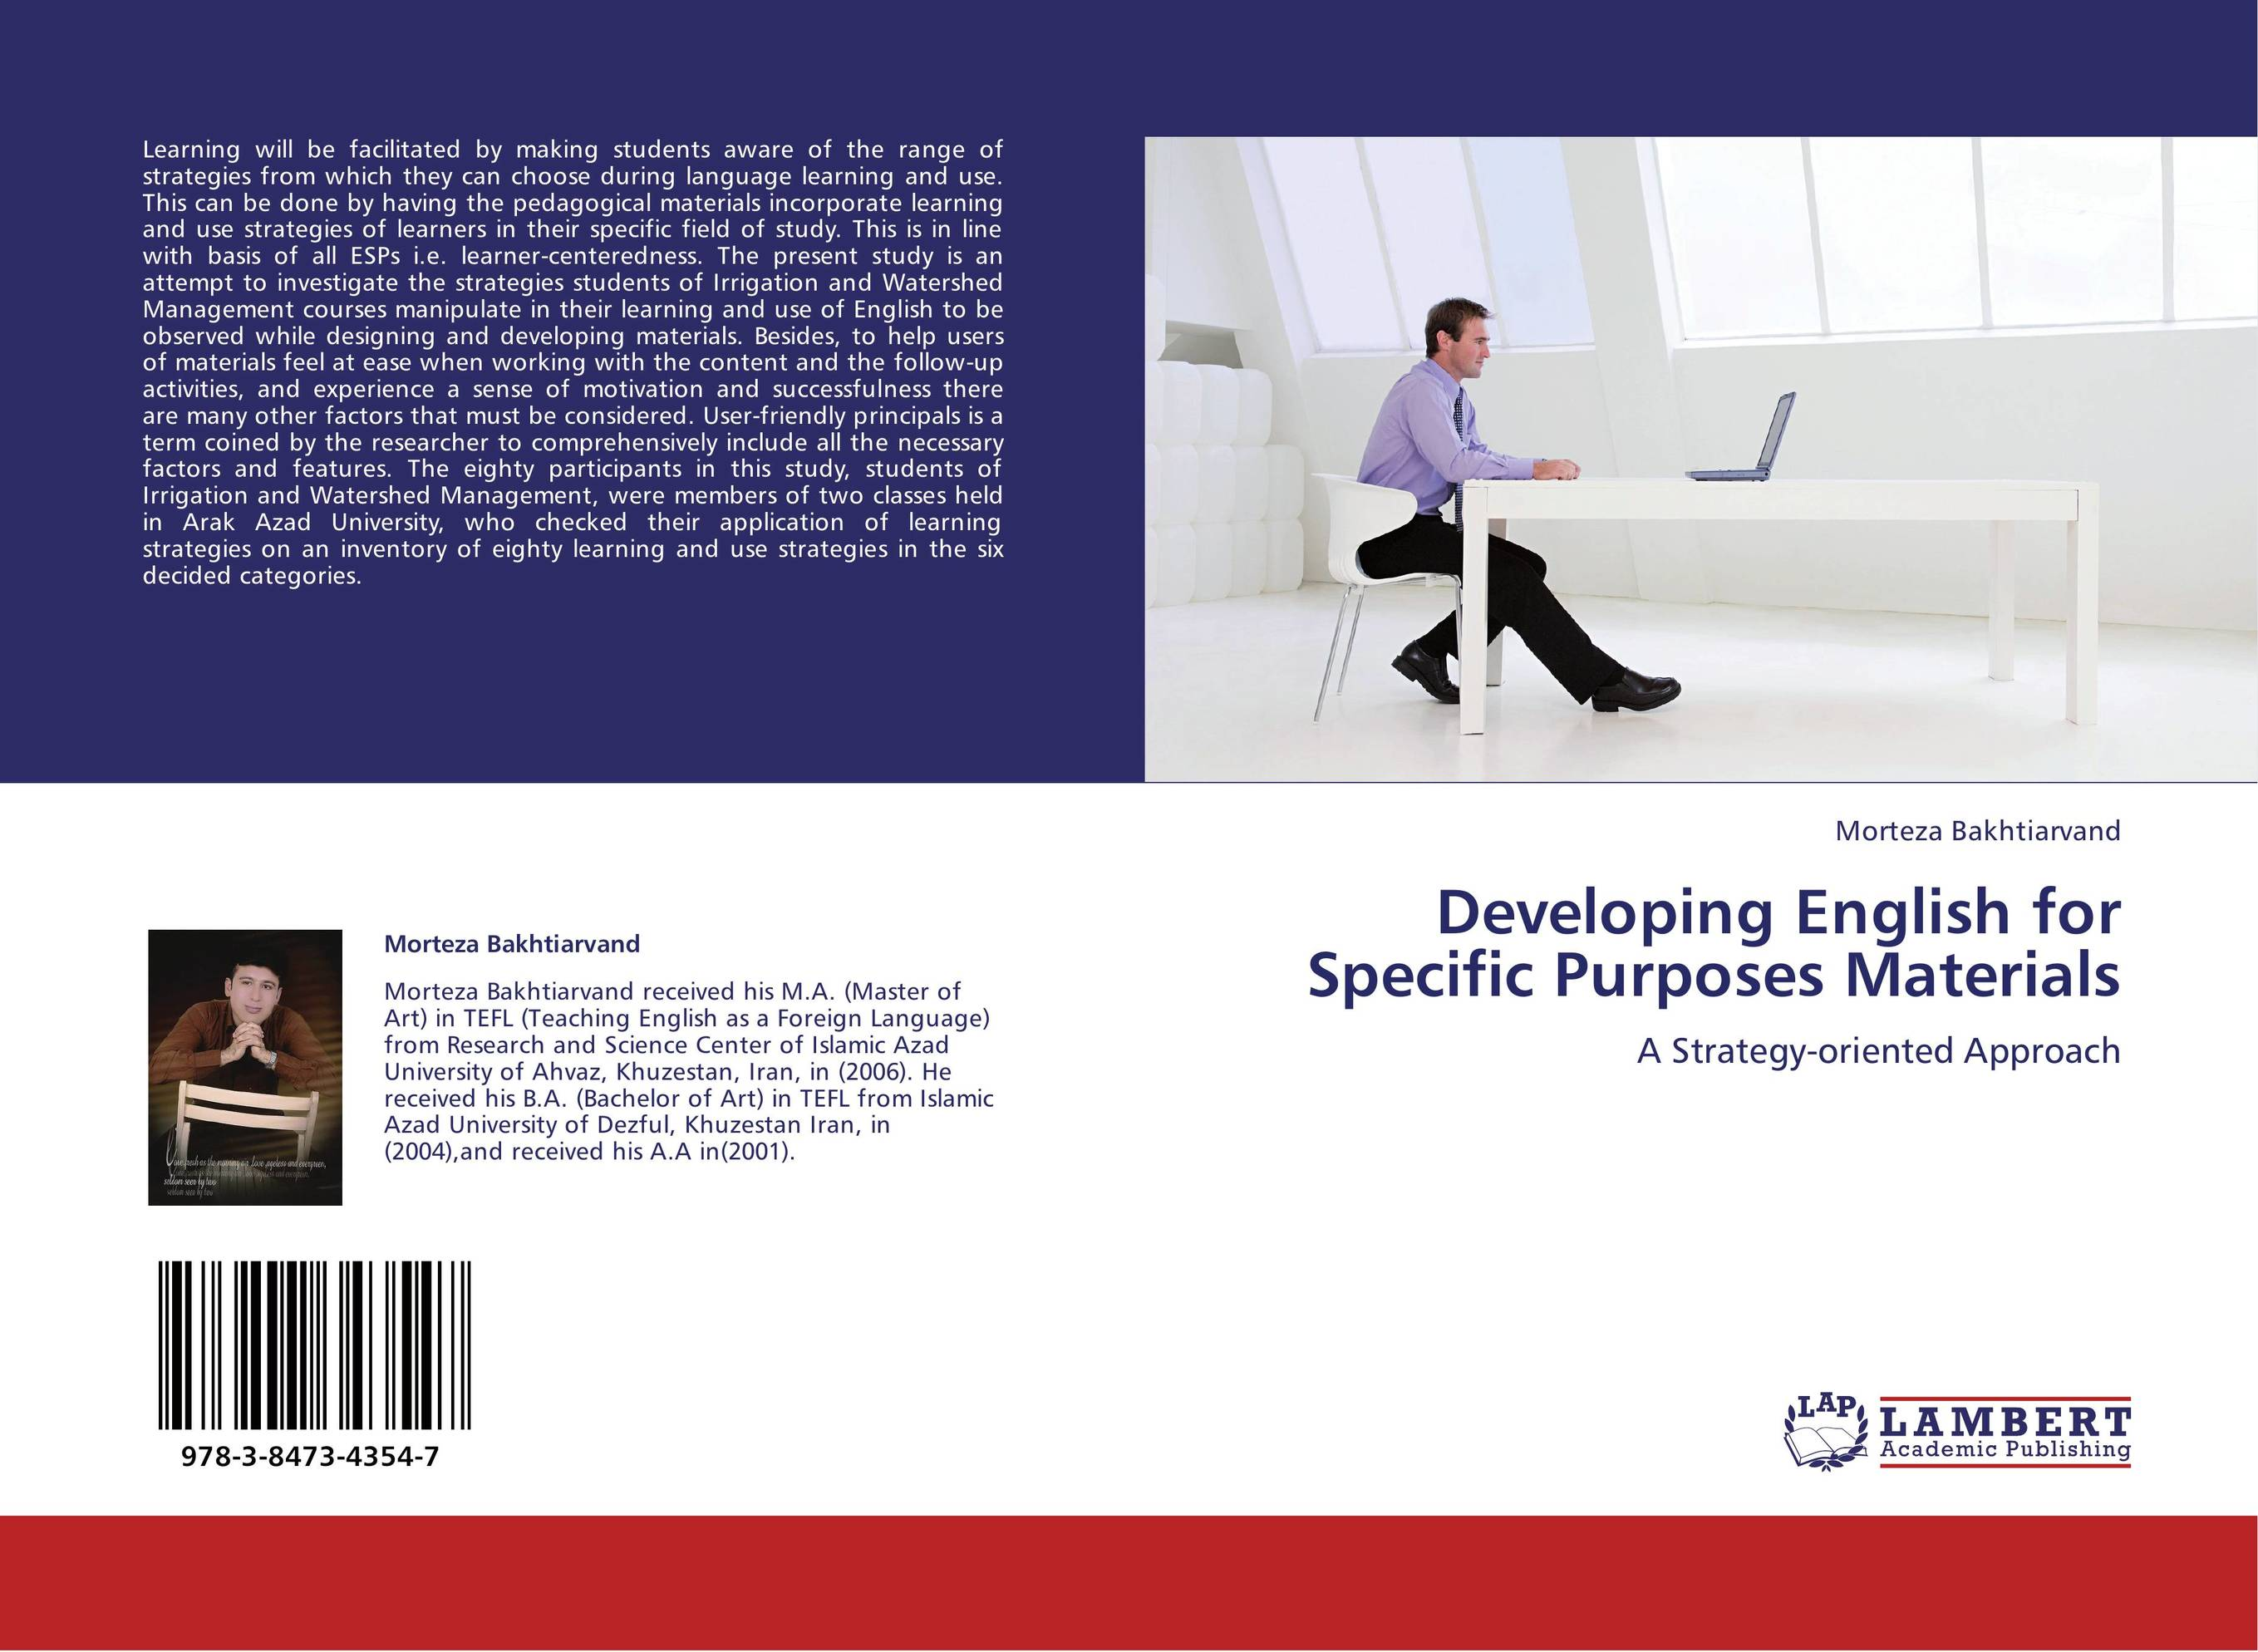 incorporating facebook in the english for specific purposes essay When teaching esp (english for specific purposes) or business english, the teacher simply continues teaching all the english that they already know how to, but incorporate vocabulary,examples, topics and contexts that are relevant to the students.